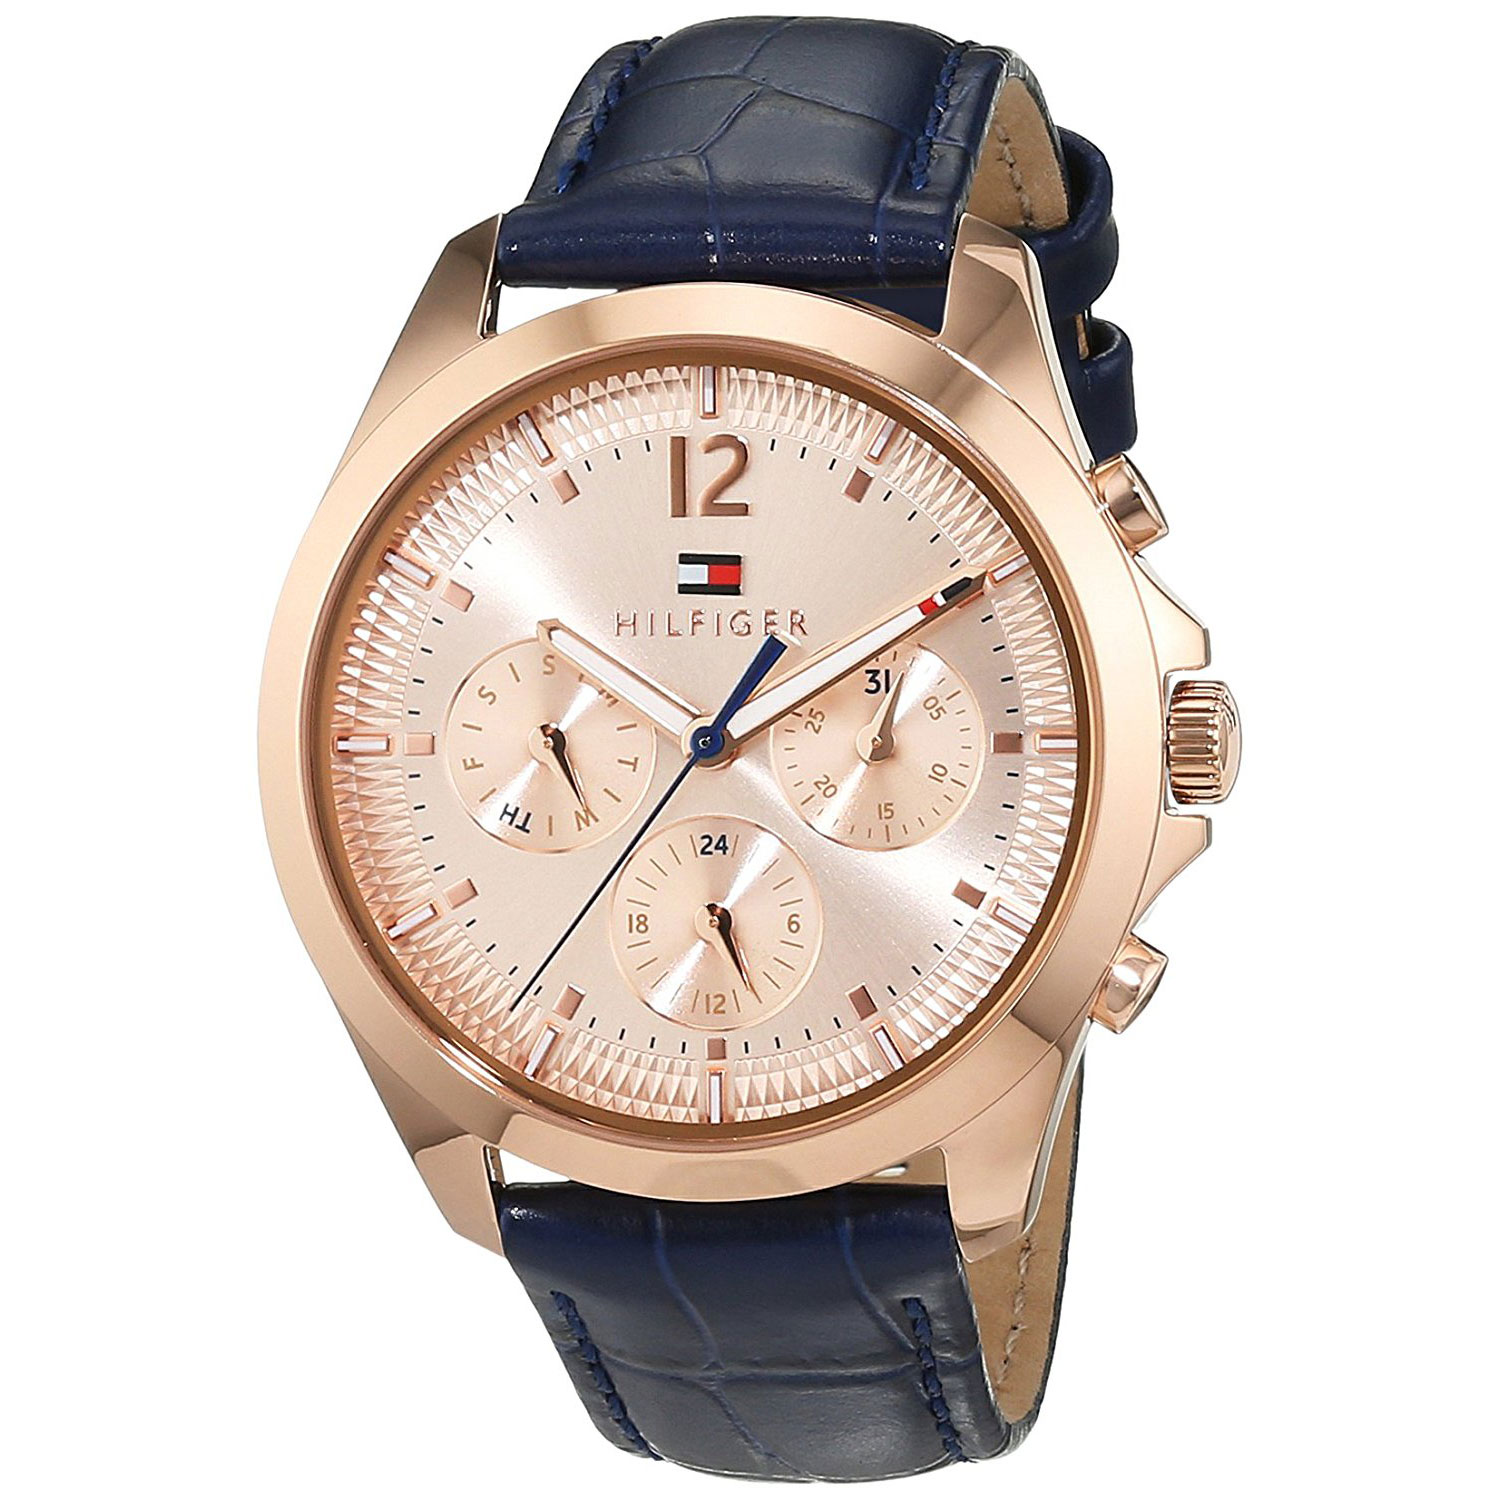 90e7c94b3a Tap to expand · Tommy Hilfiger Watch with rose gold stainless steel and  dark blue leather strap 1781703